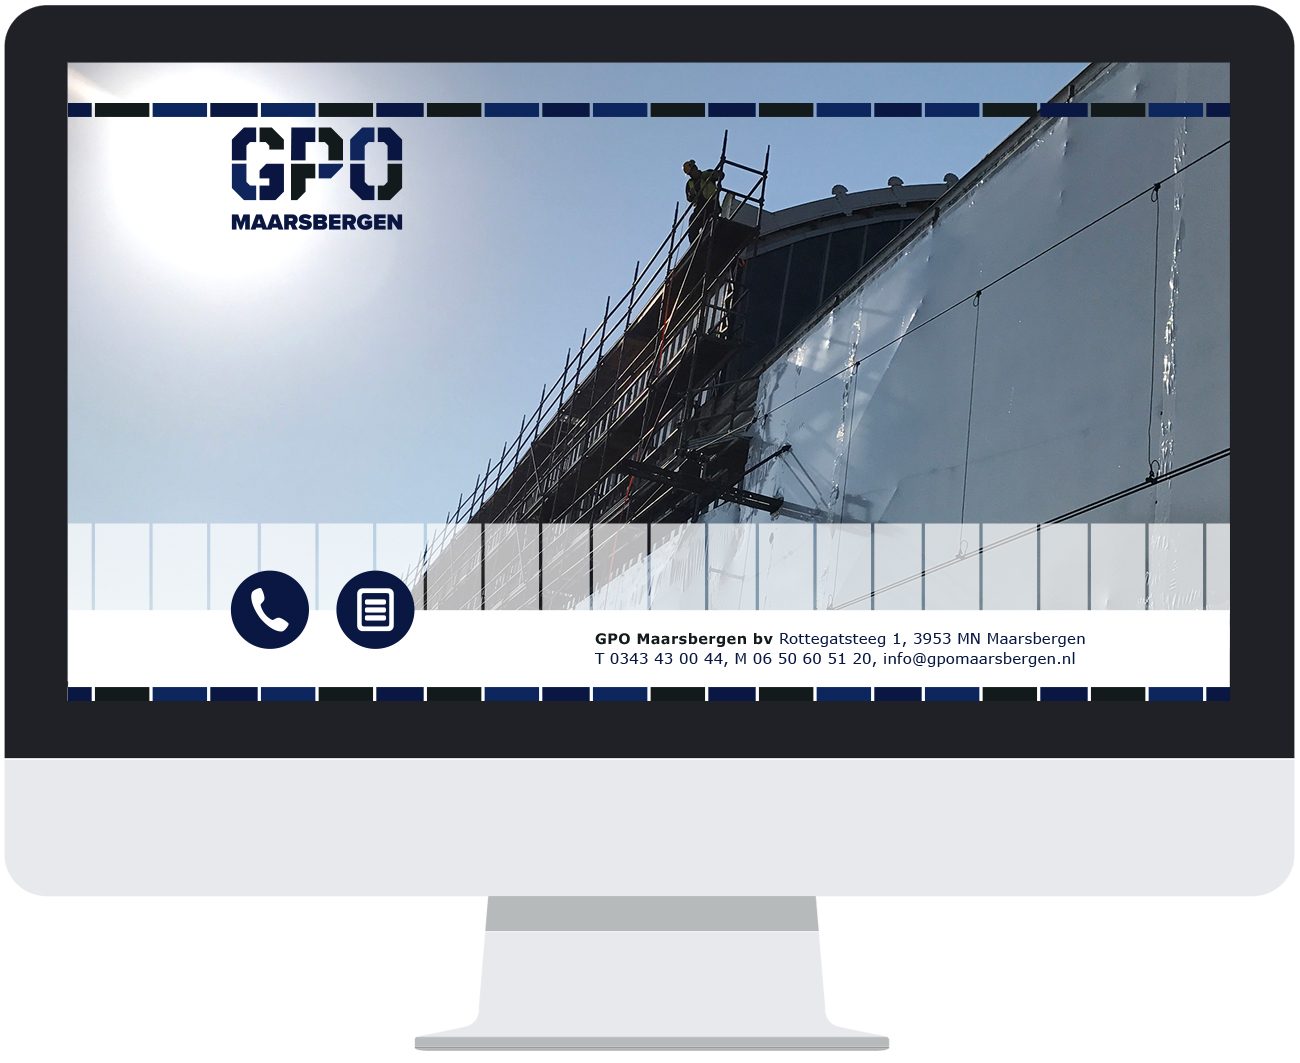 gpo maarsbergen website desktop